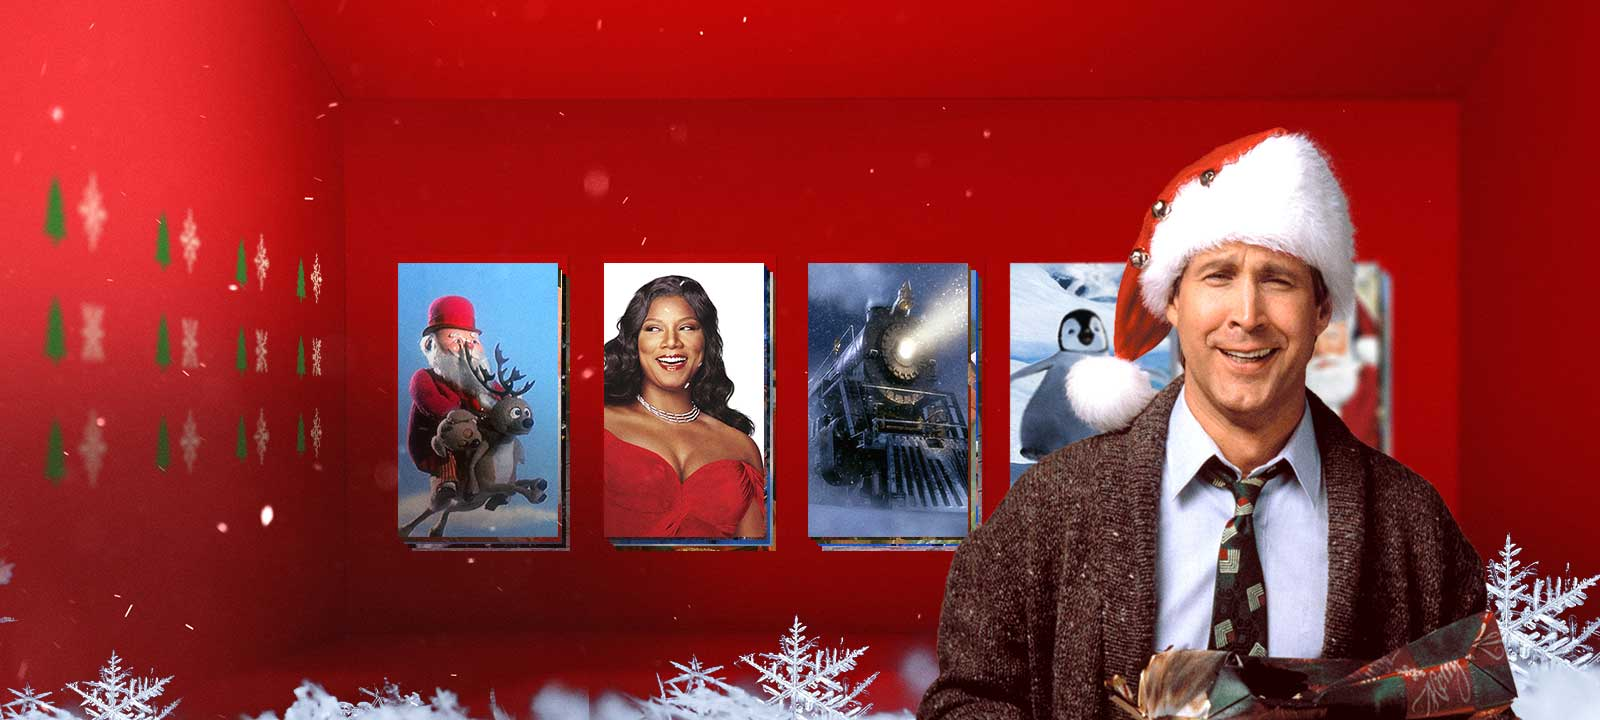 Best Christmas Commercials Best Christmas Ever Season 1 Episode And Cast Information Amc